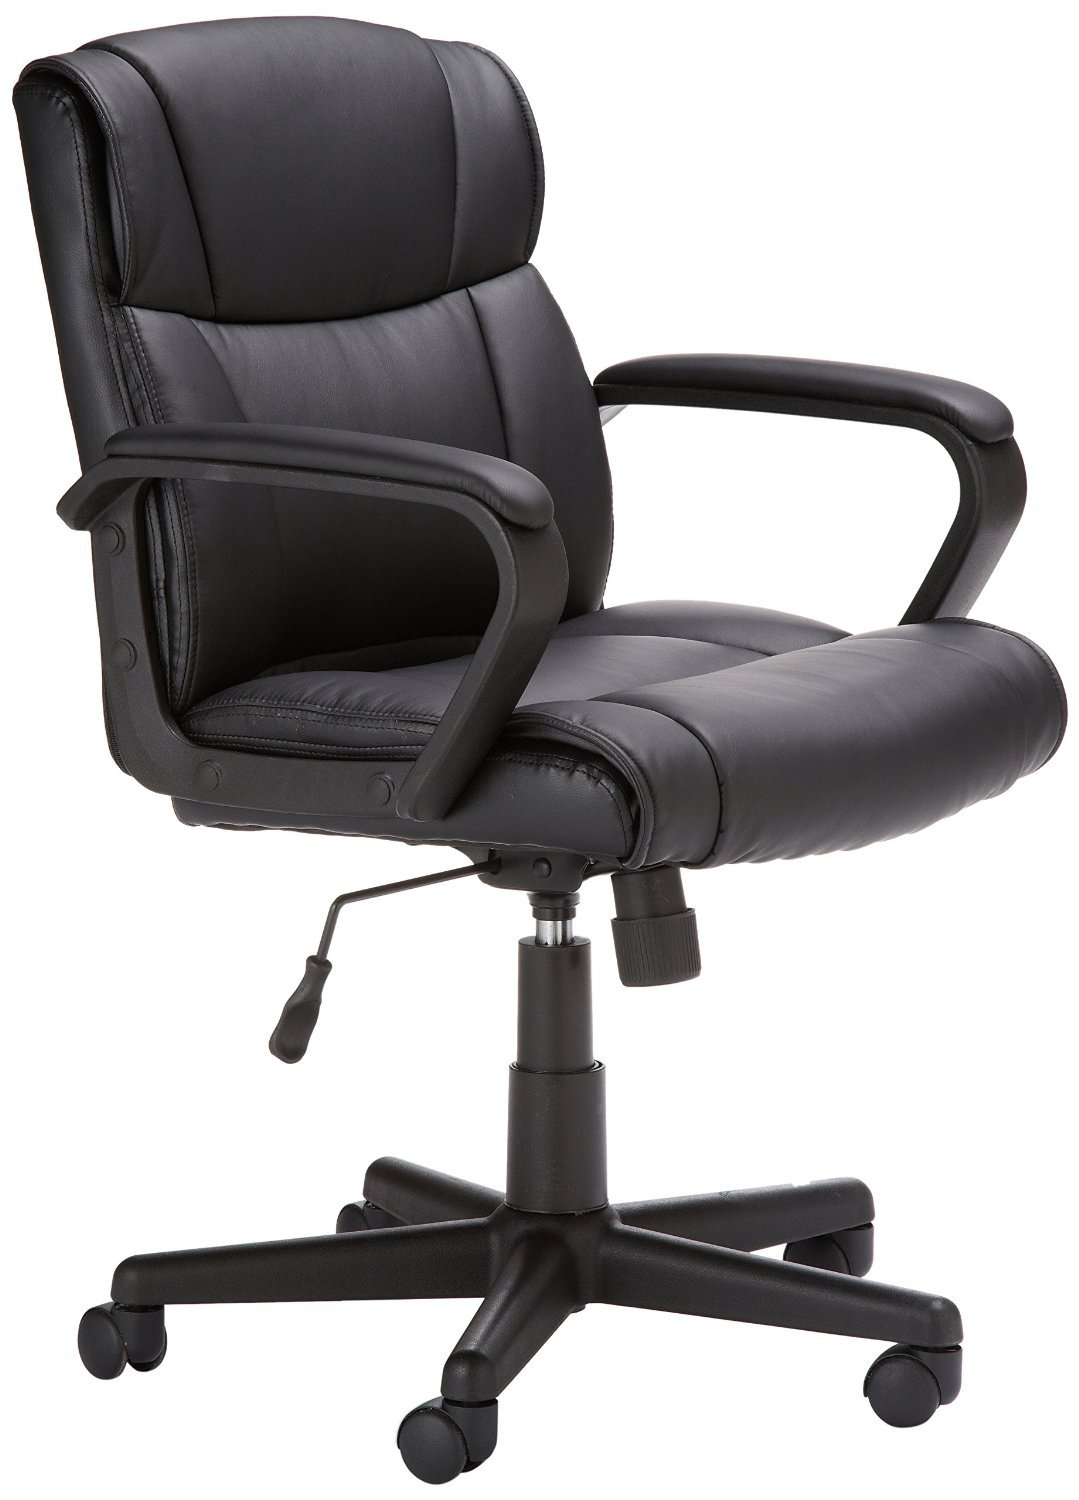 comfort office chair. Comfort Office Chair N